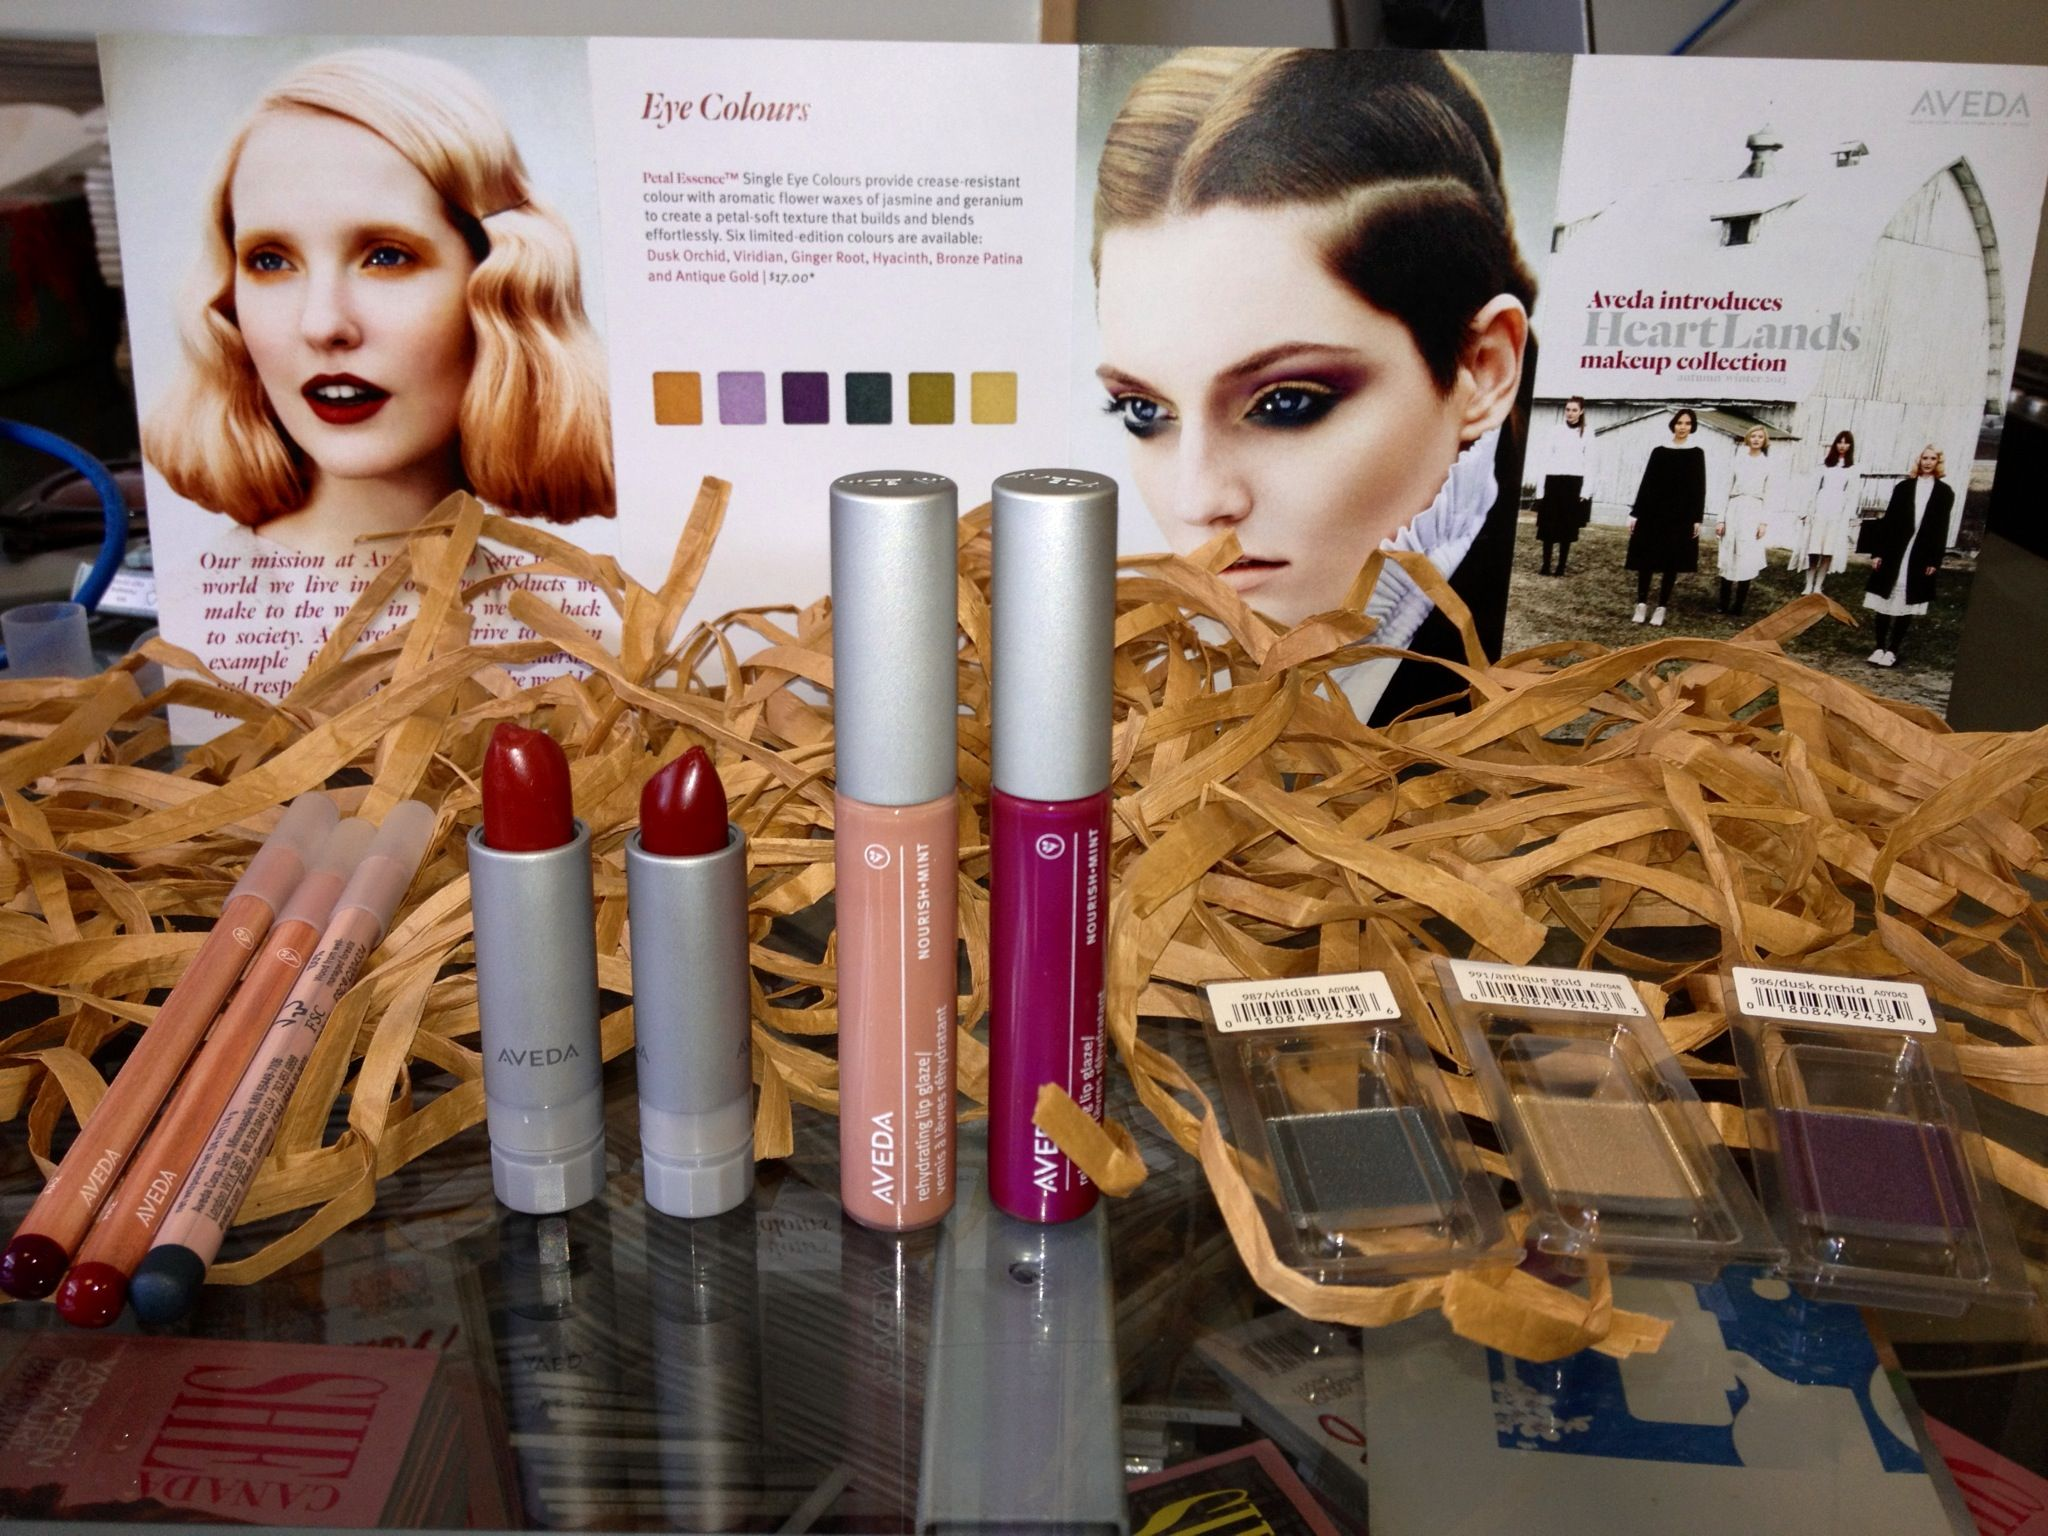 heartlands autumn collection by aveda makeup and skin care